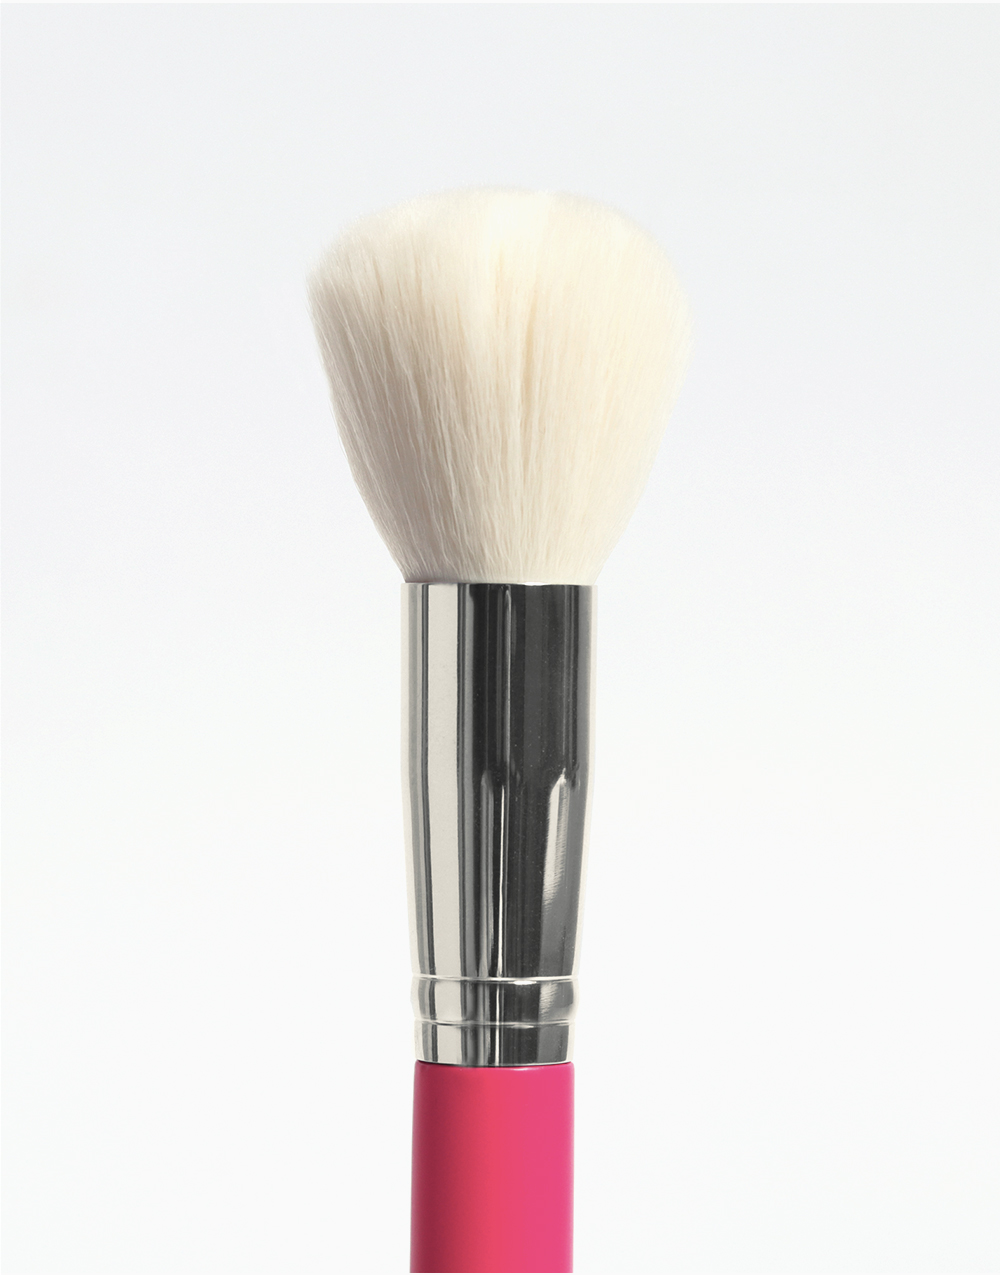 Pink Brush Collection Powder Brush by Vice Cosmetics